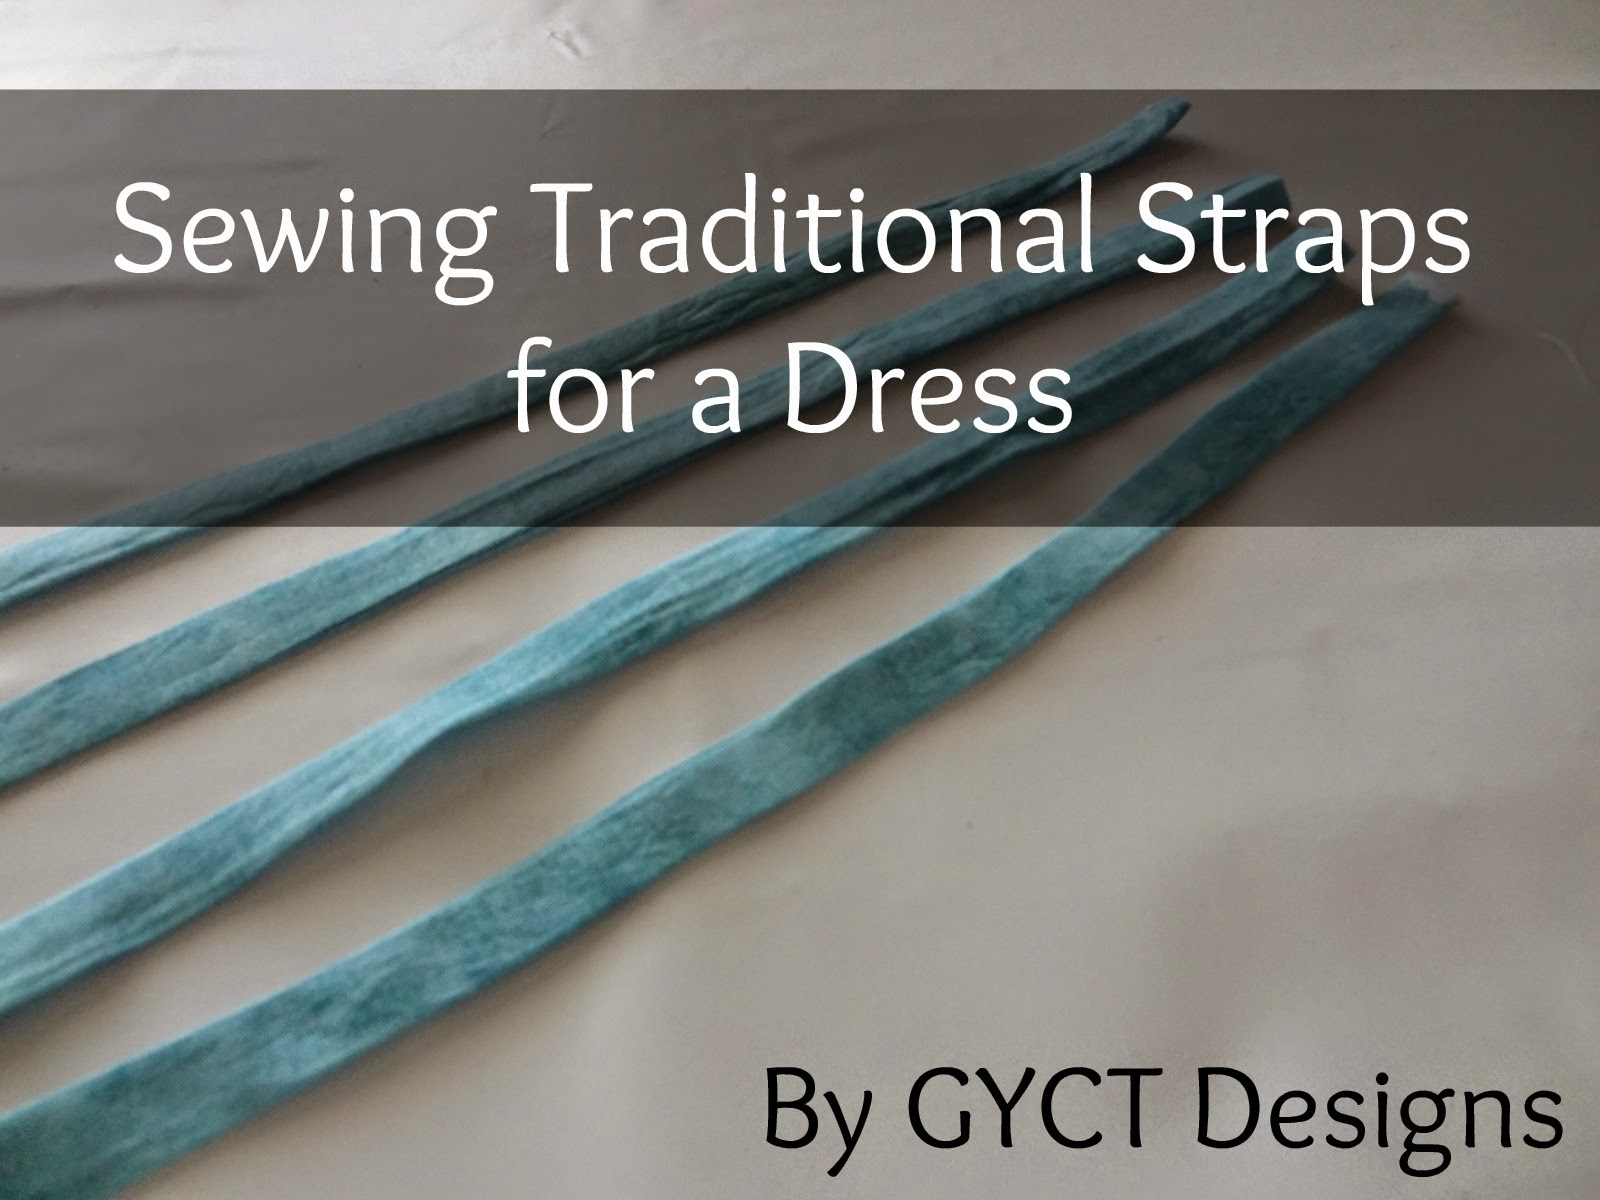 Sewing Traditional Straps to a Lined Dress by GYCT